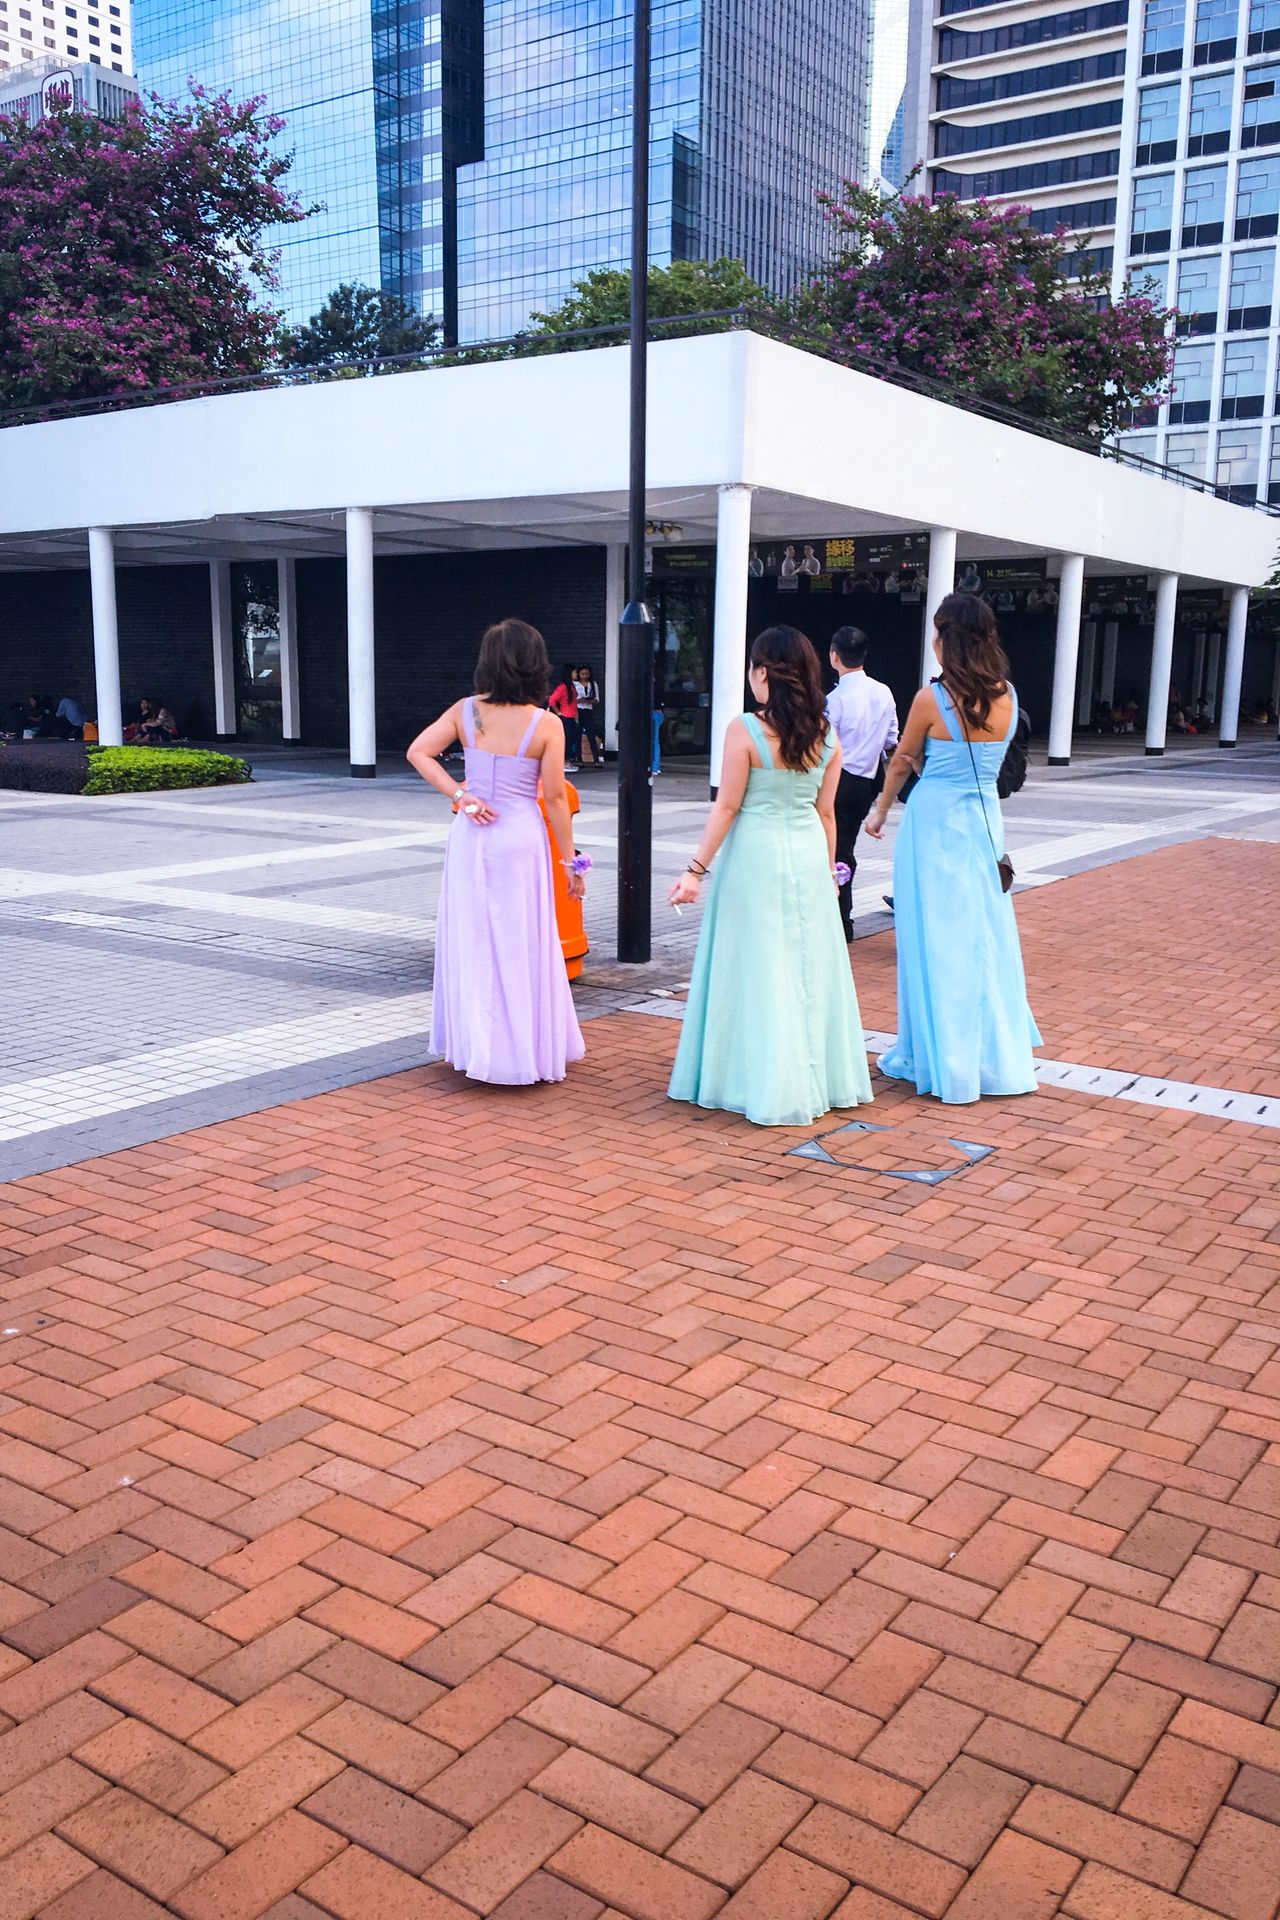 Streetphotography Streetphoto_color Candid Bridemaids Waiting Smoking Ashtray  Snapshots Of Life Wedding Photography Break Looking At Things Dresses Pastel Showcase: November Wedding Wedding Around The World Women Who Inspire You The Following Girl Power